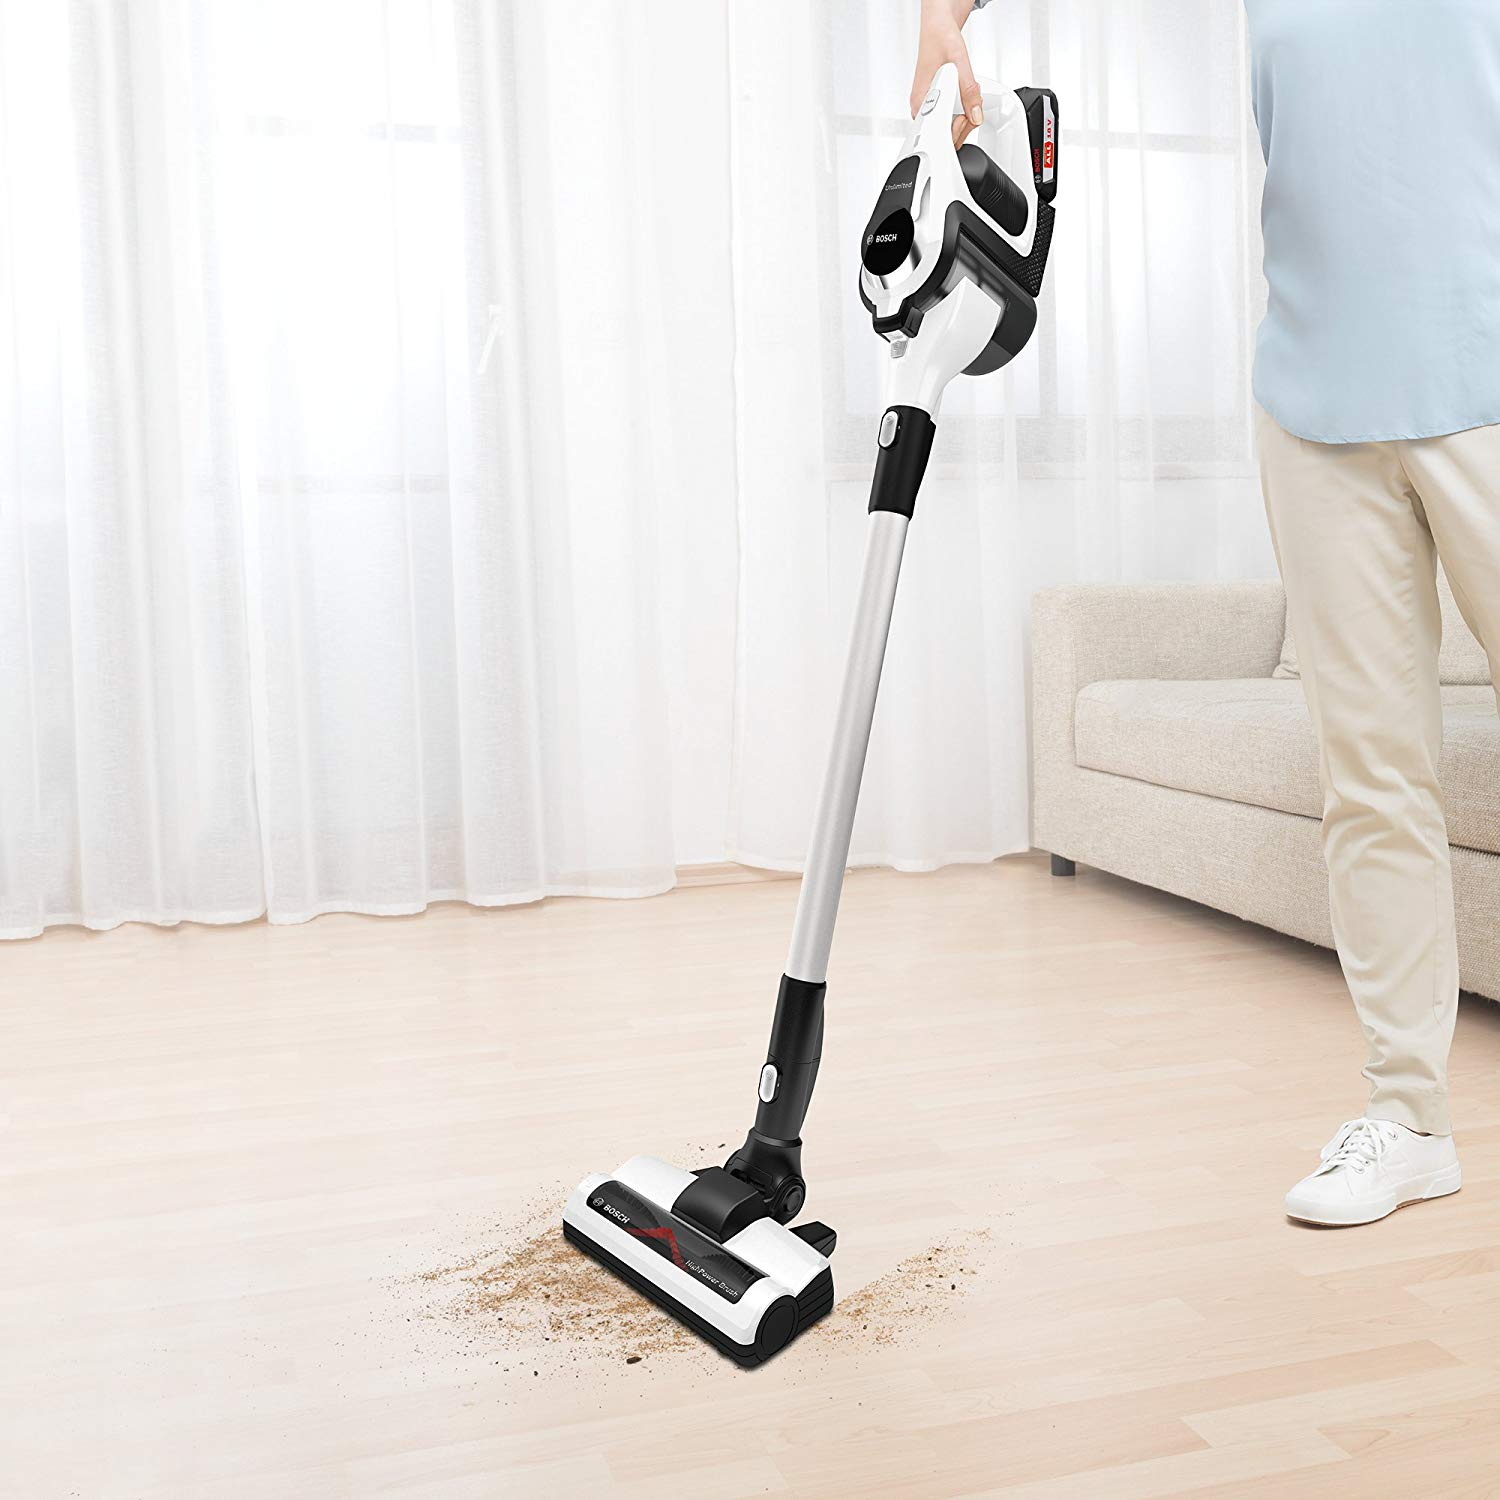 Aspirateur balai Bosch Unlimited : tests, avis (2020)